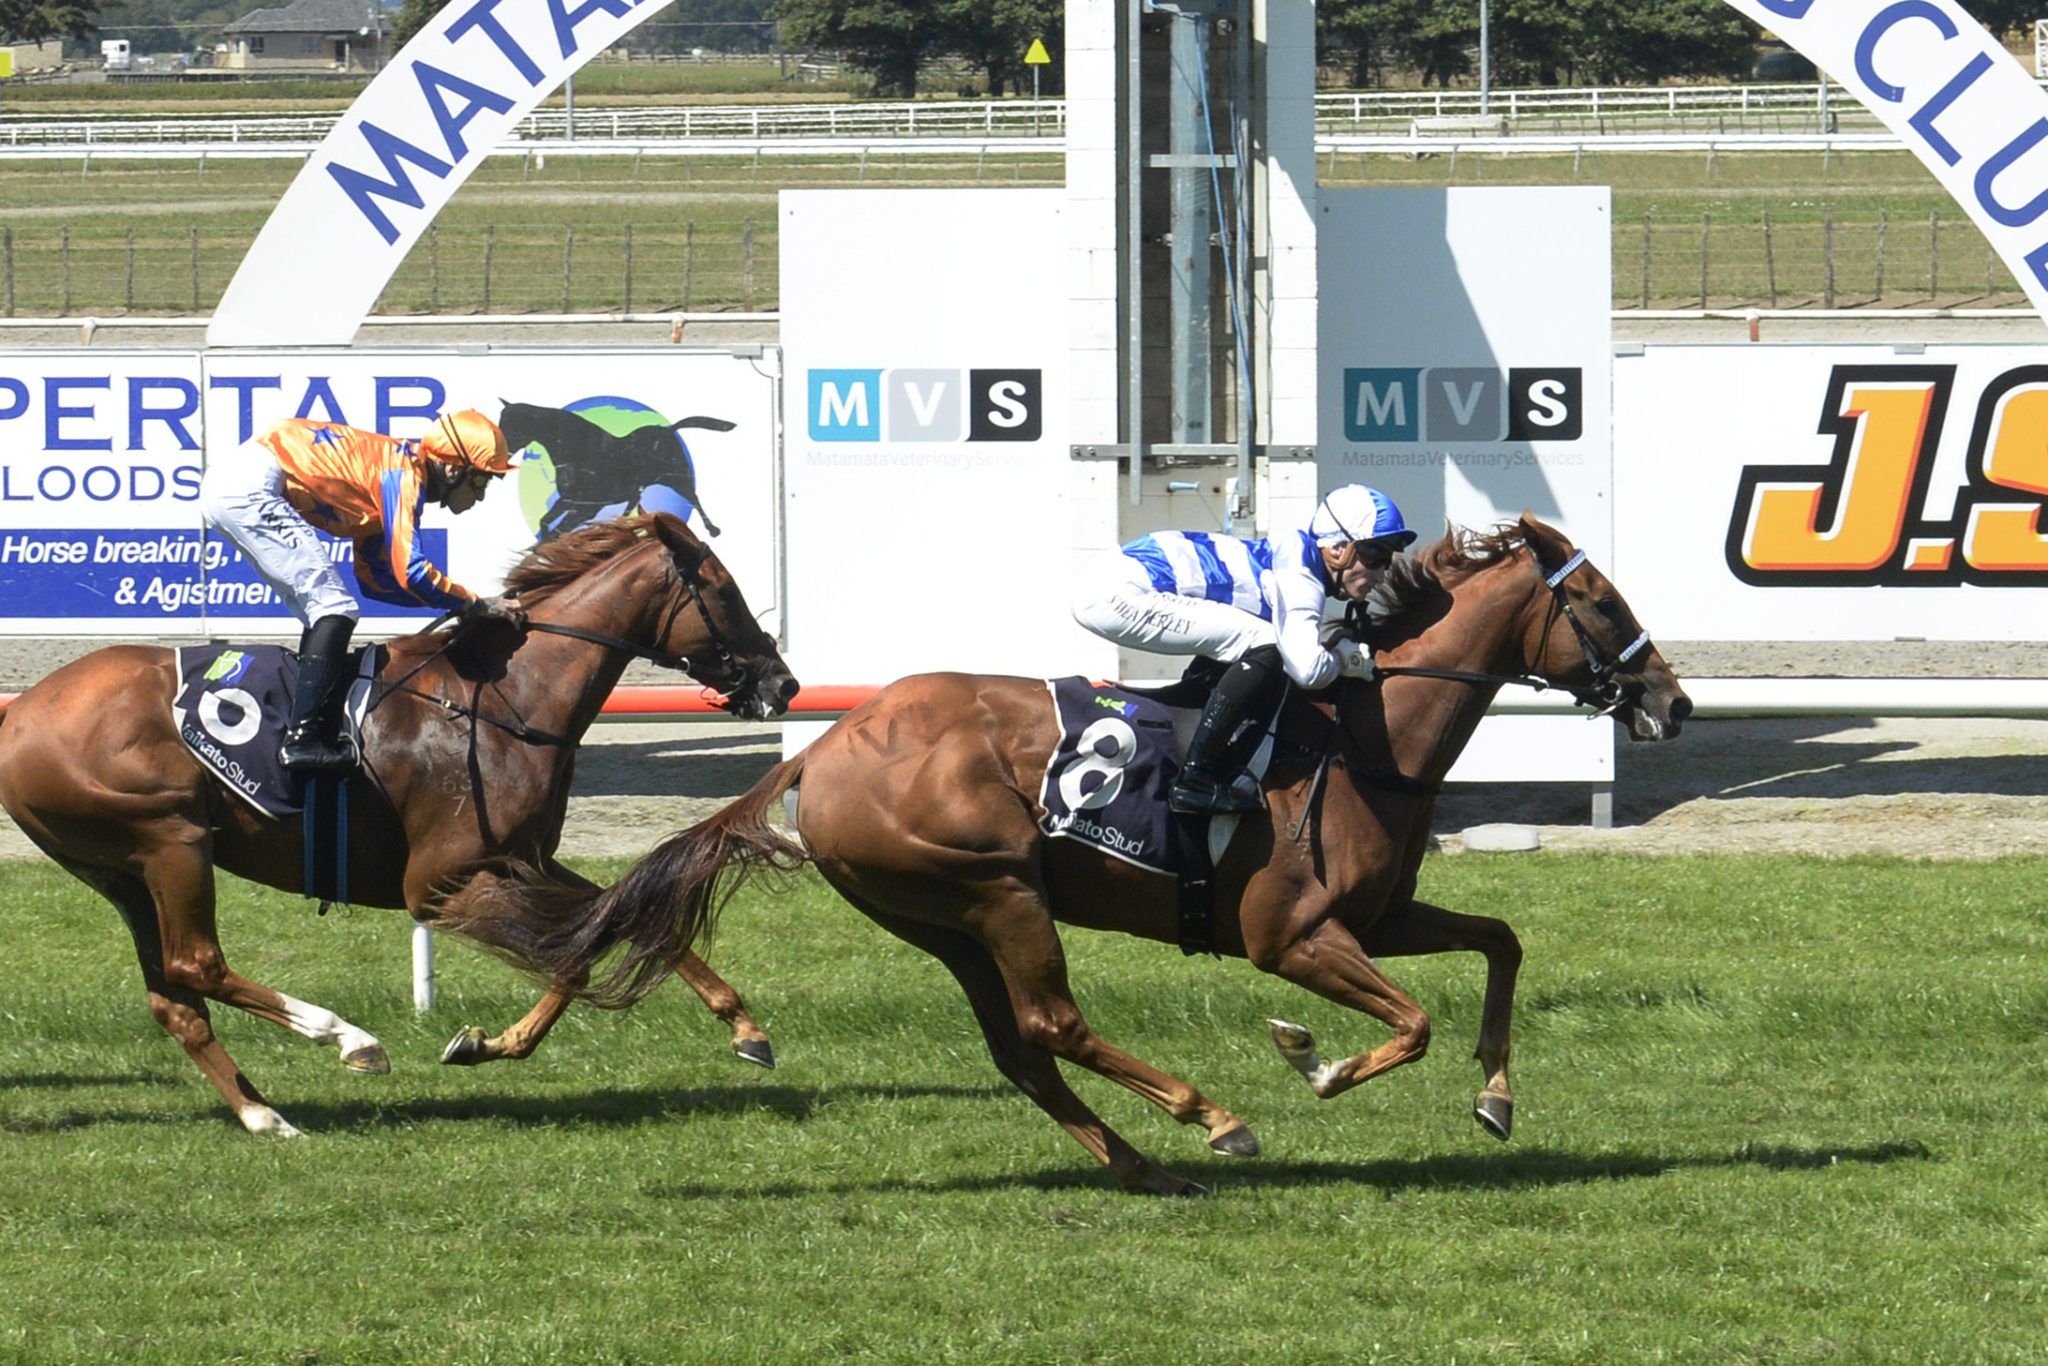 SIDE BY SIDE SOUTH WAIKATO 17 3 2021 RACE IMAGES